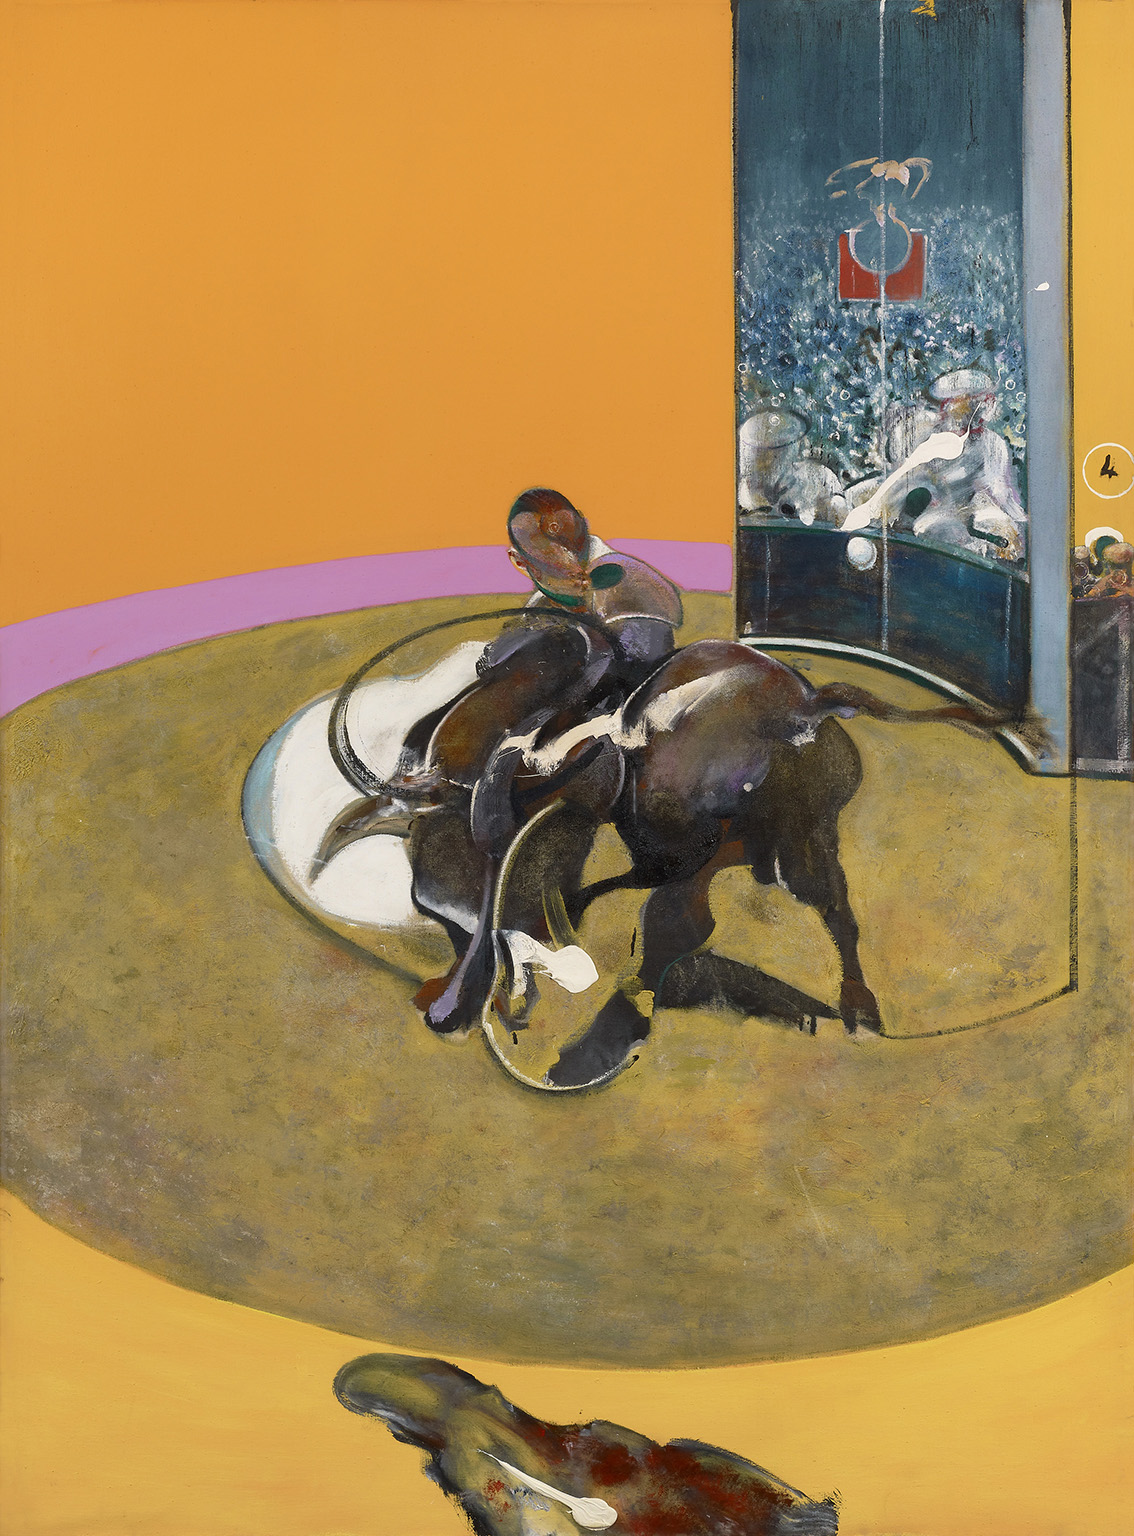 Francis Bacon, Study for Bullfight No. 1, 1969. Oil on canvas, 197.7 x 147.8 cm. Private collection, Switzerland © The Estate of Francis Bacon. All rights reserved, DACS/Artimage 2020. Photo: Prudence Cuming Associates Ltd